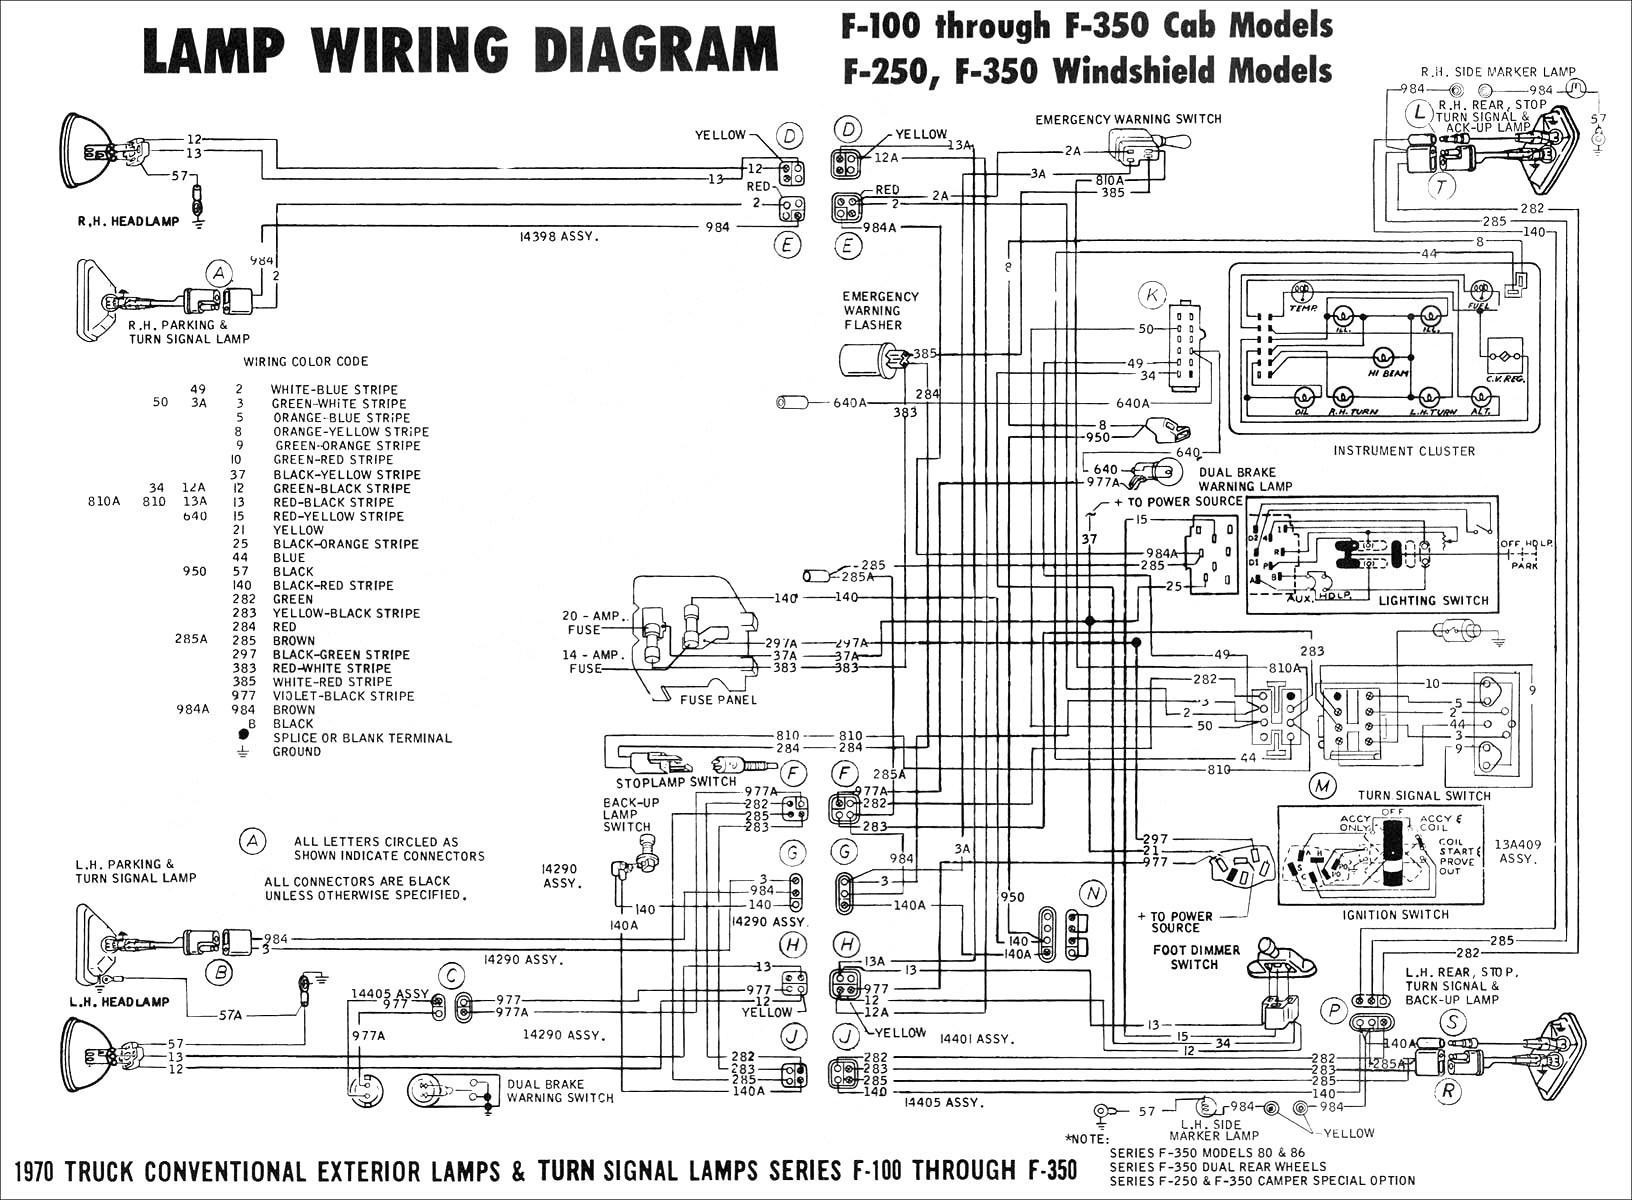 DIAGRAM] 2000 Chaparral Ssi 196 Trim Wiring Diagram FULL Version HD Quality Wiring  Diagram - REACTIONFUER.MAI-LIE.FRreactionfuer.mai-lie.fr